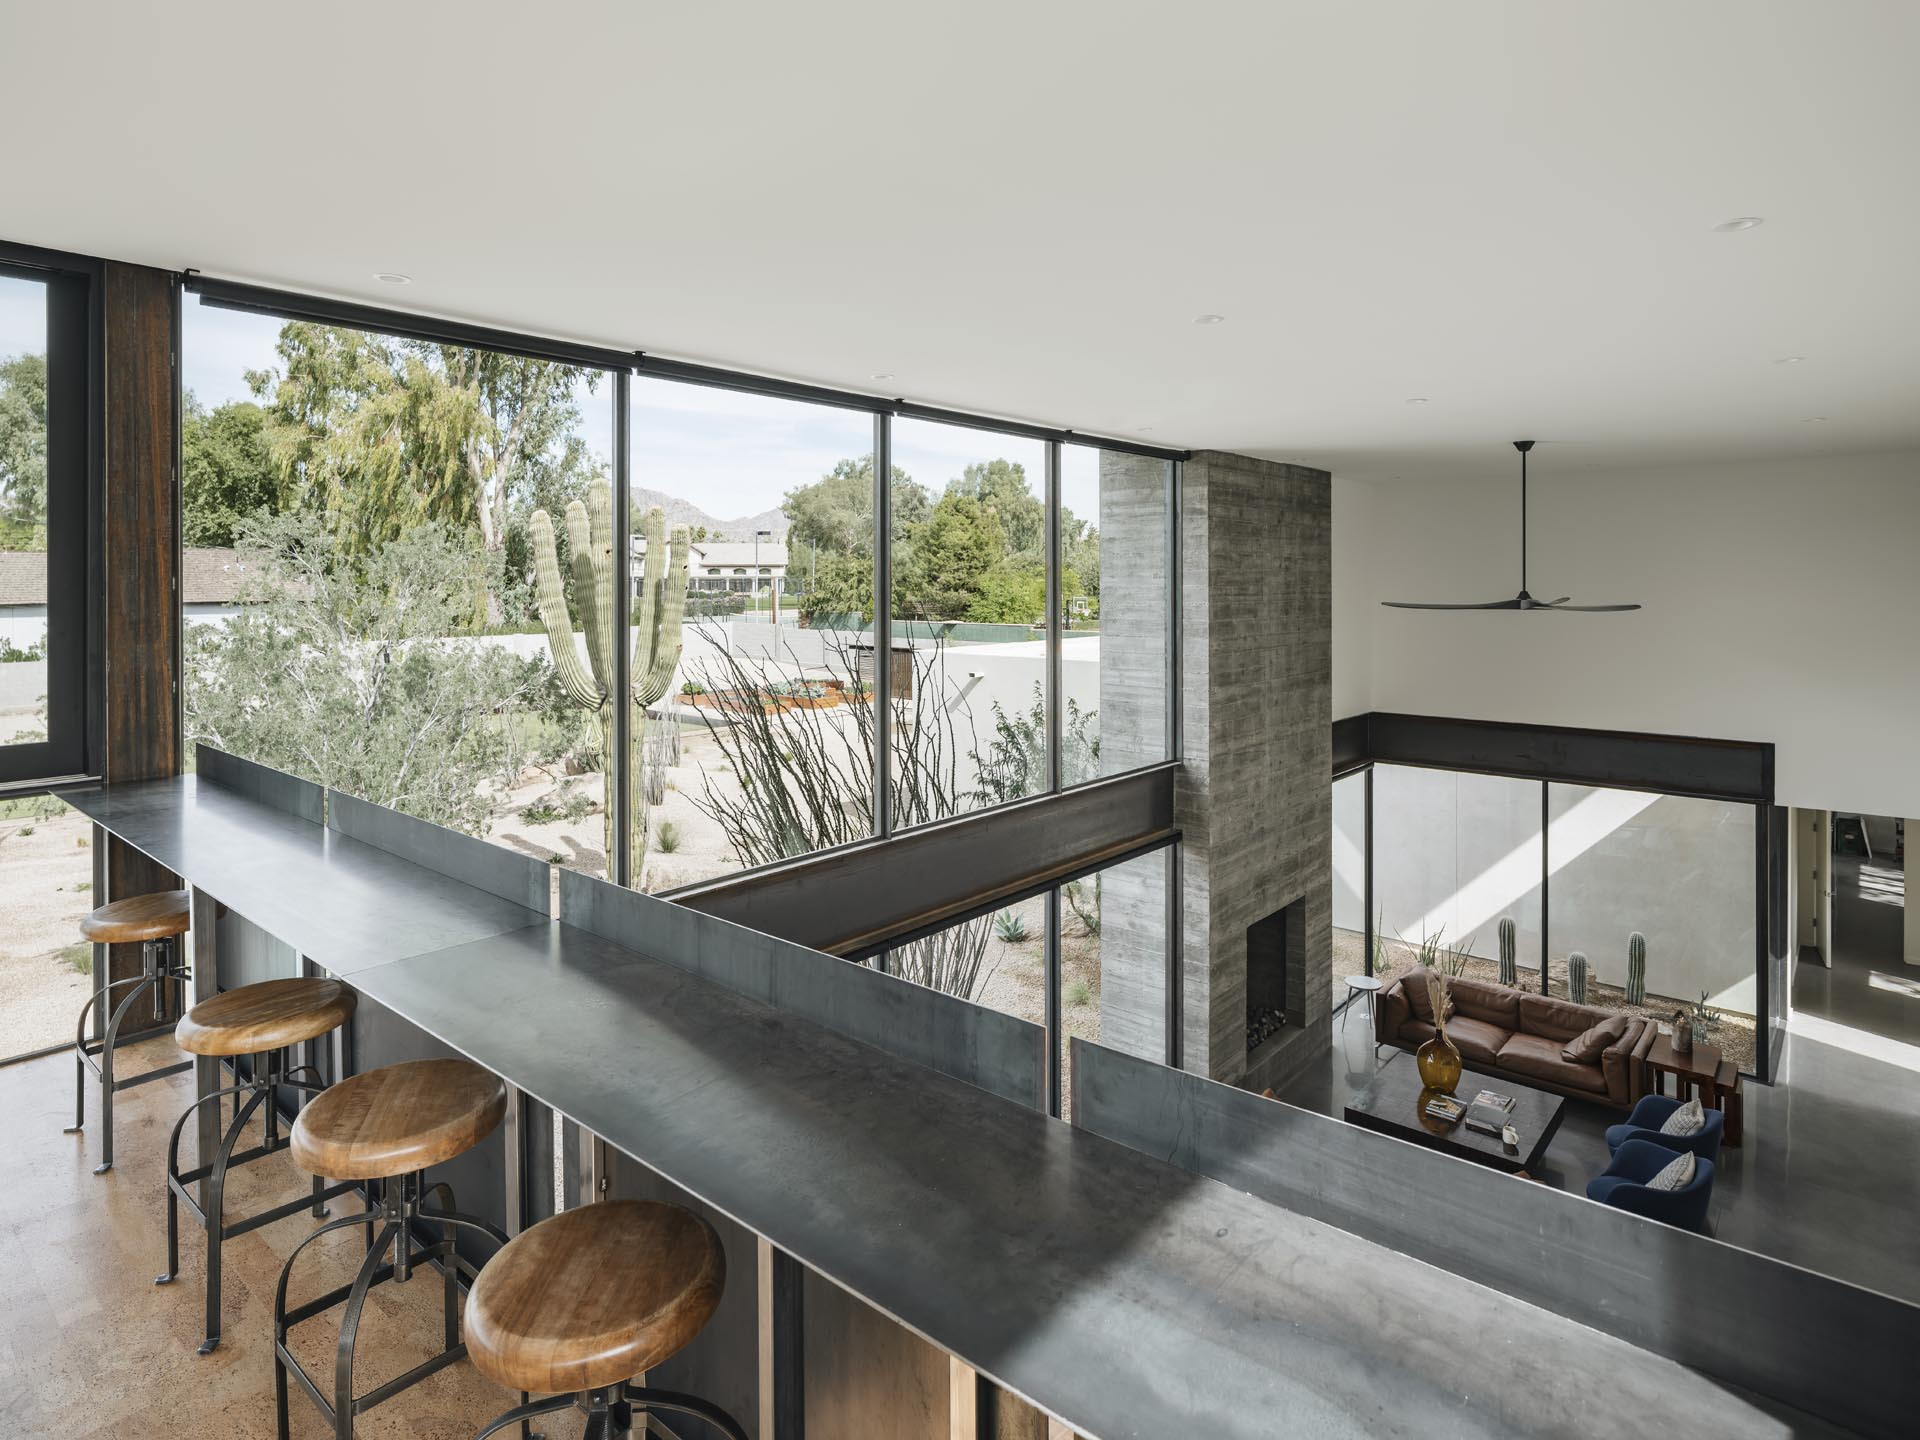 A lofted area has a steel bar for taking in the views of the lower level and distant mountain views.